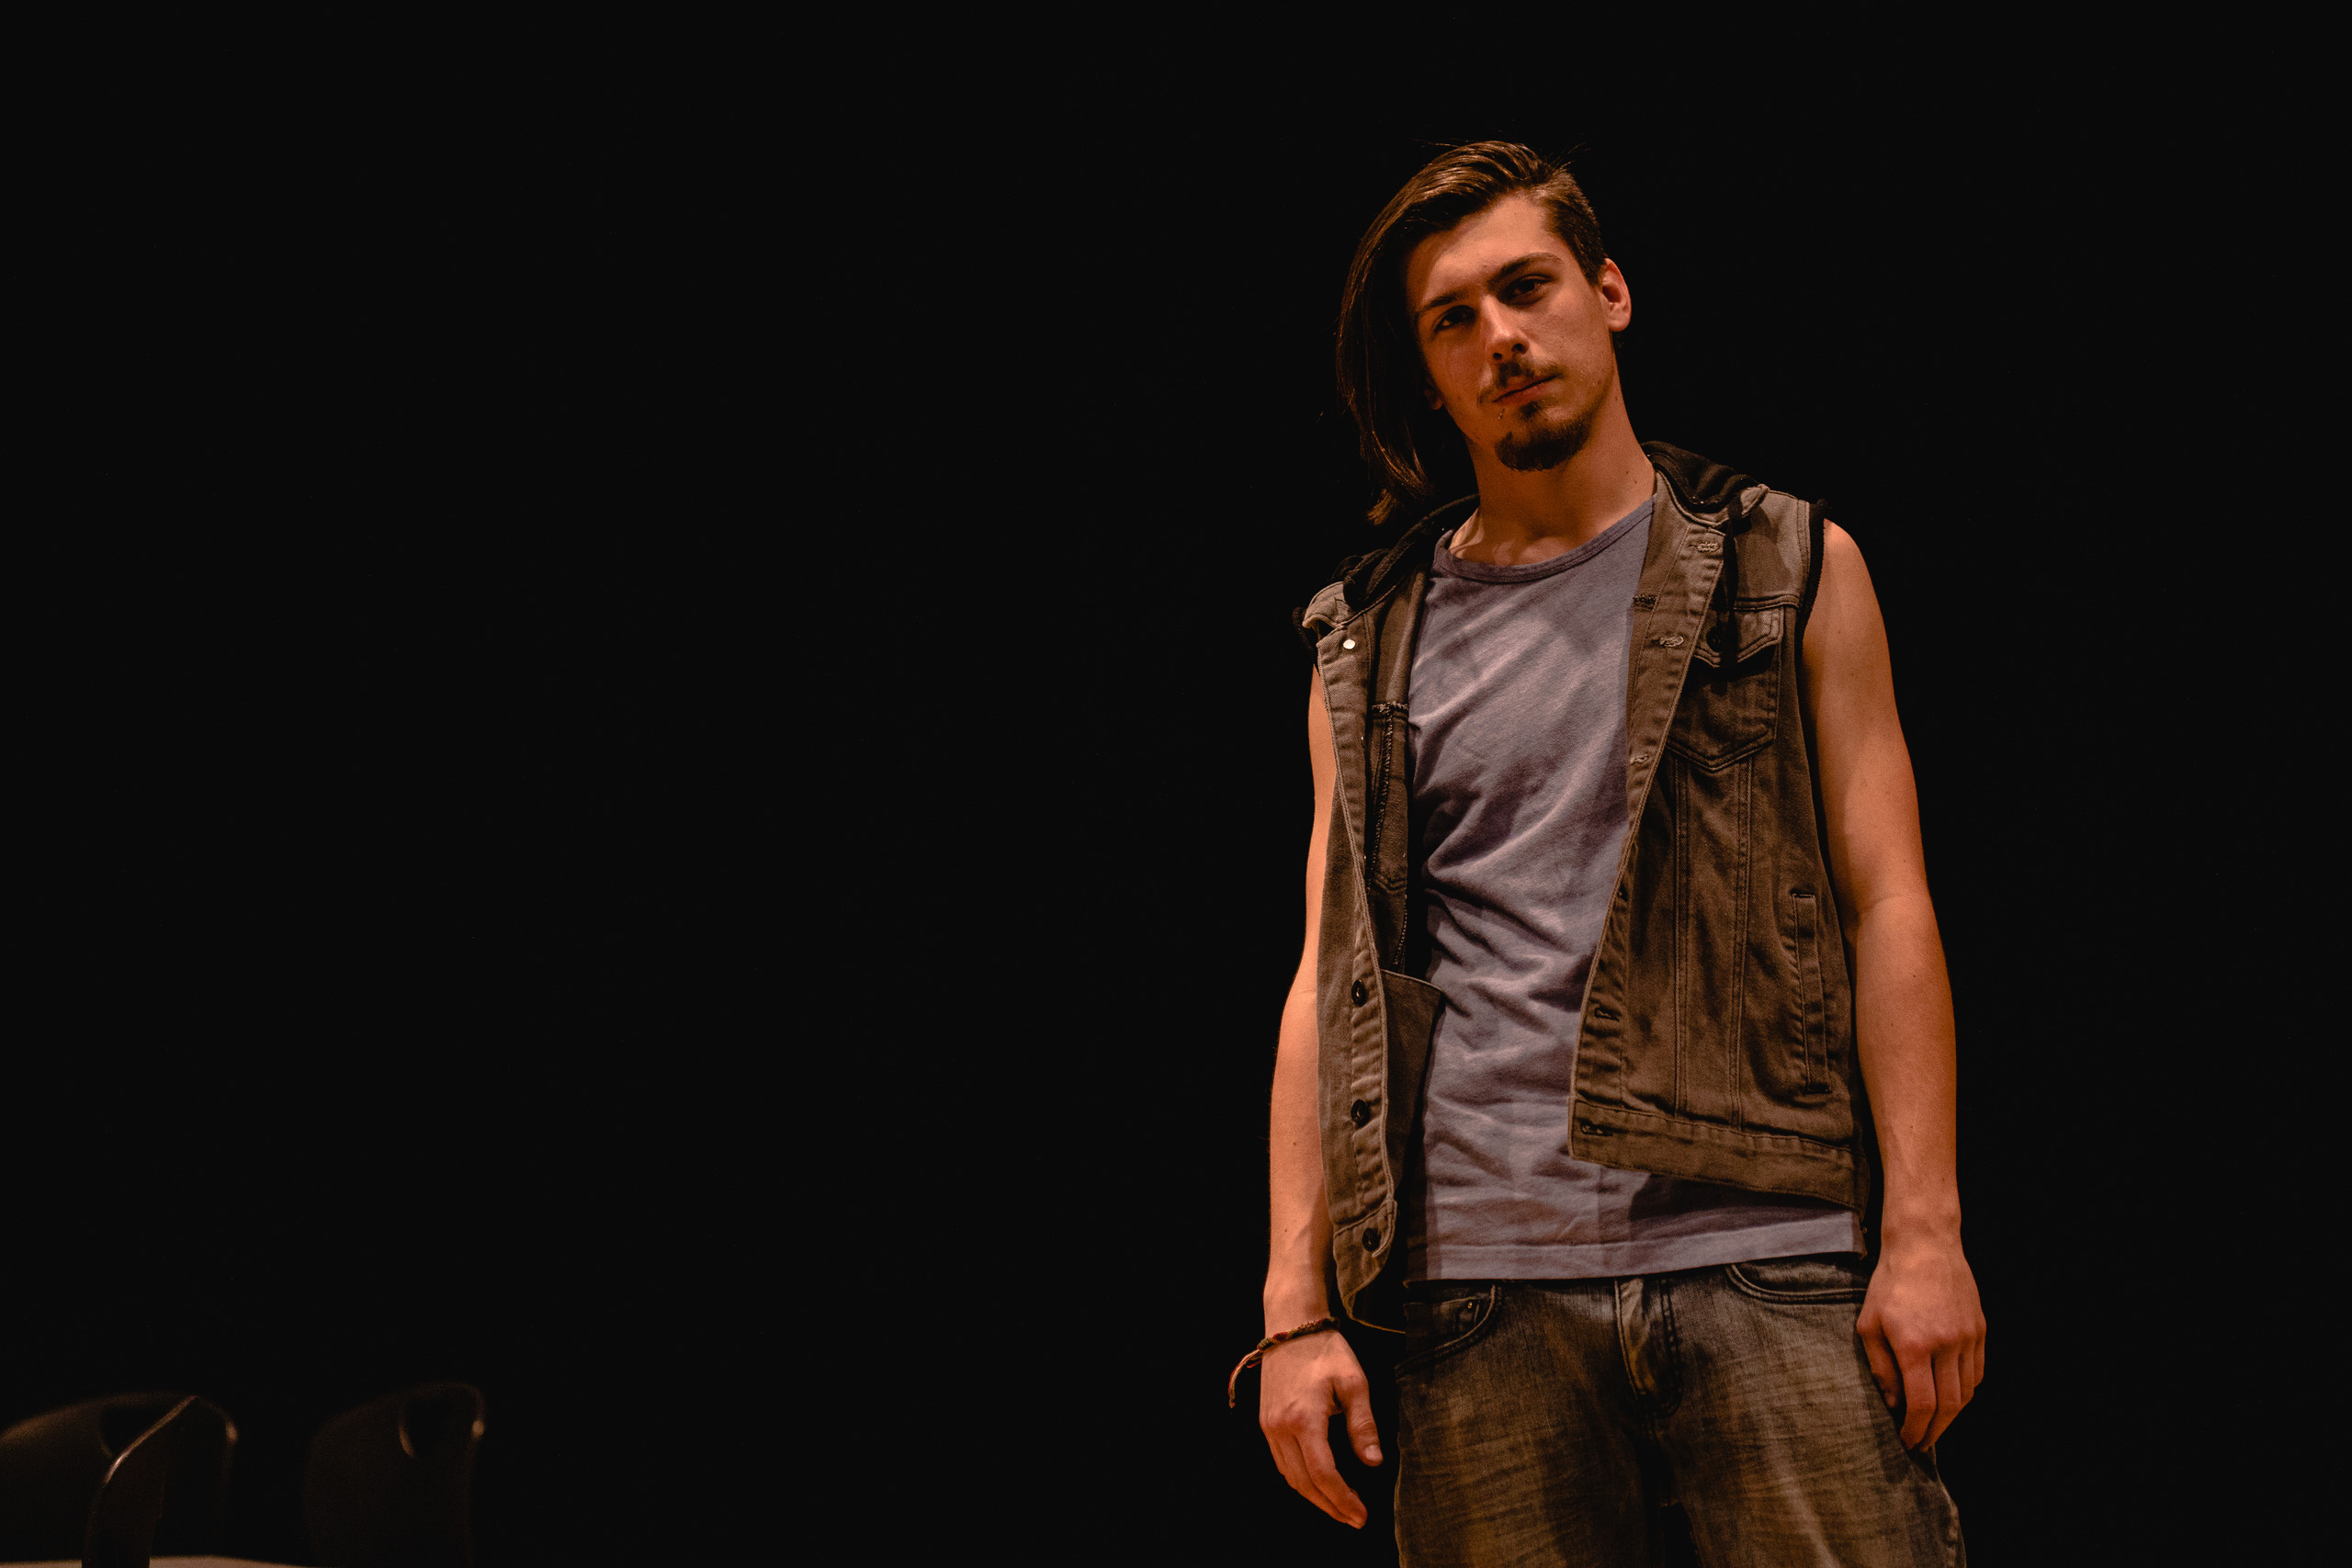 A high school senior boy stares directly into the camera on a dark, dramatically lit theater stage.